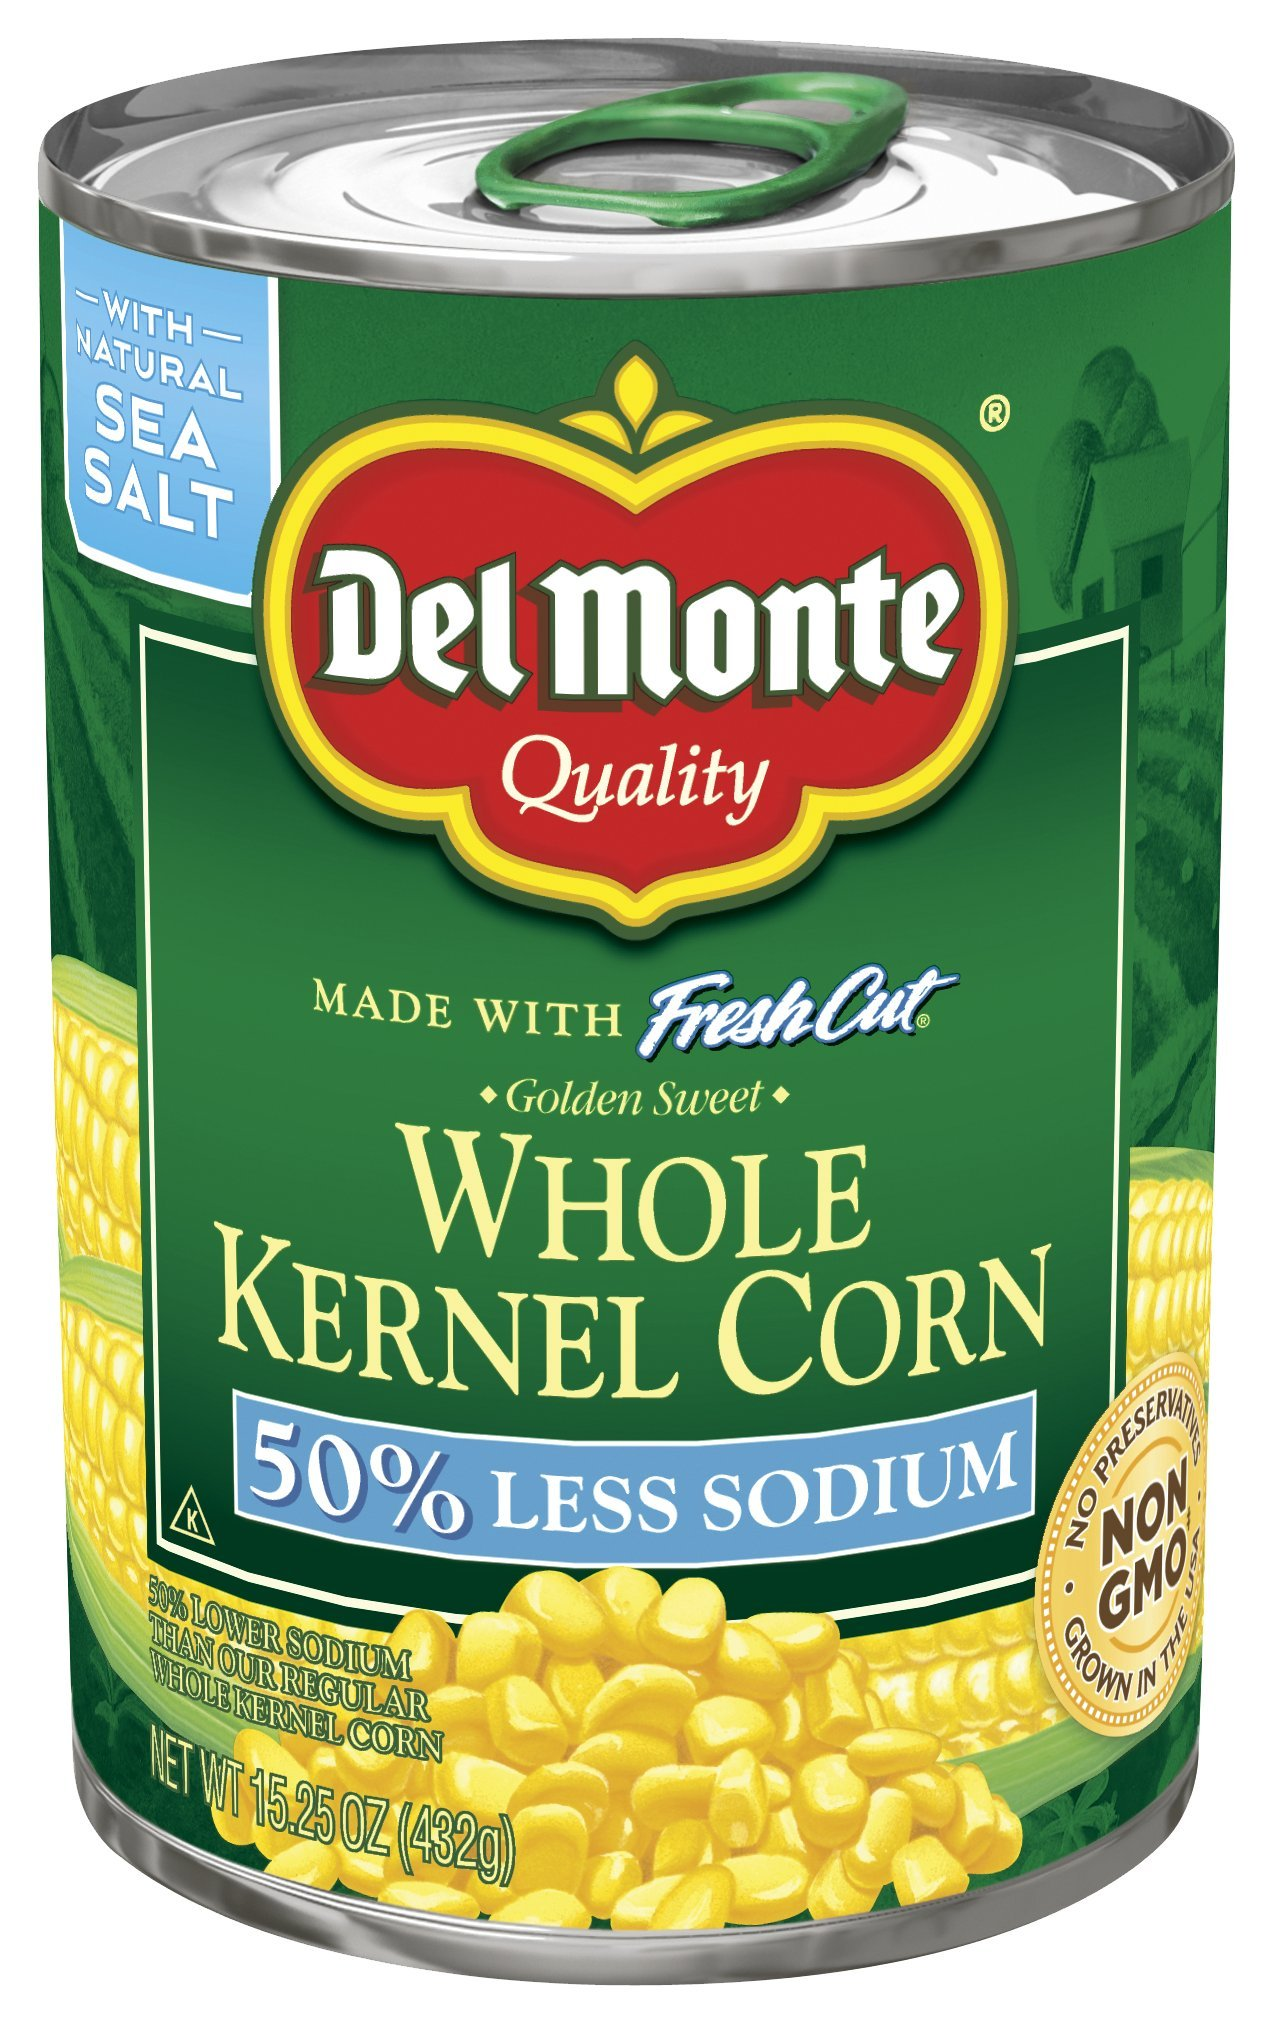 Del Monte Pull-Top Can Fresh Cut 50% Less Sodium Golden Sweet Whole Kernel Corn, 15.25 oz